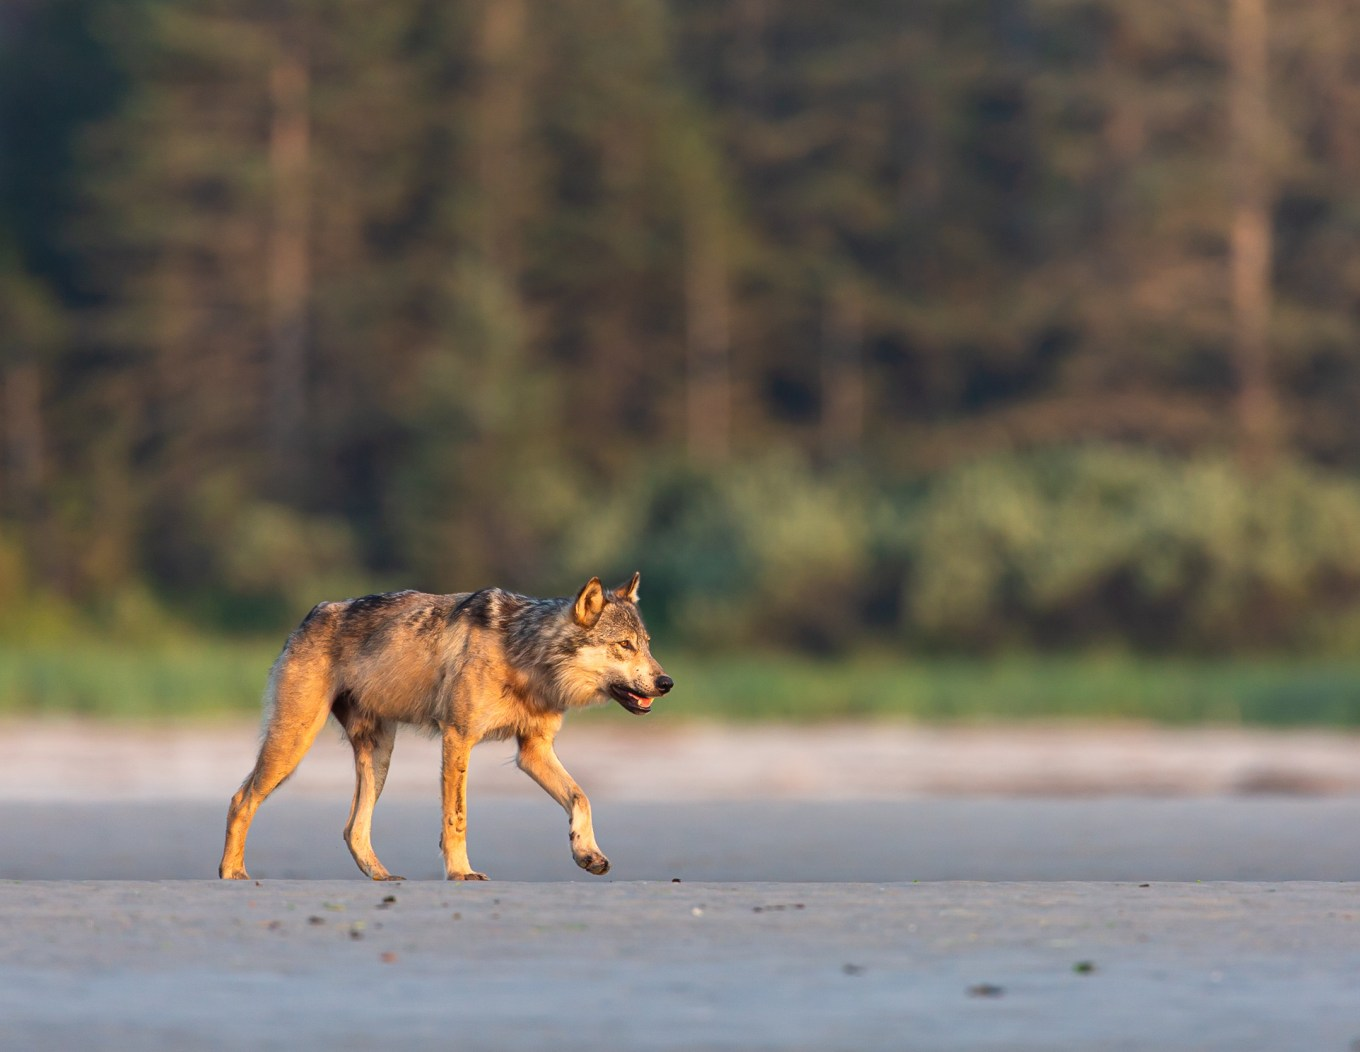 A coastal wolf patrolling the sandy intertidal zone at low tide in the Great Bear Rainforest